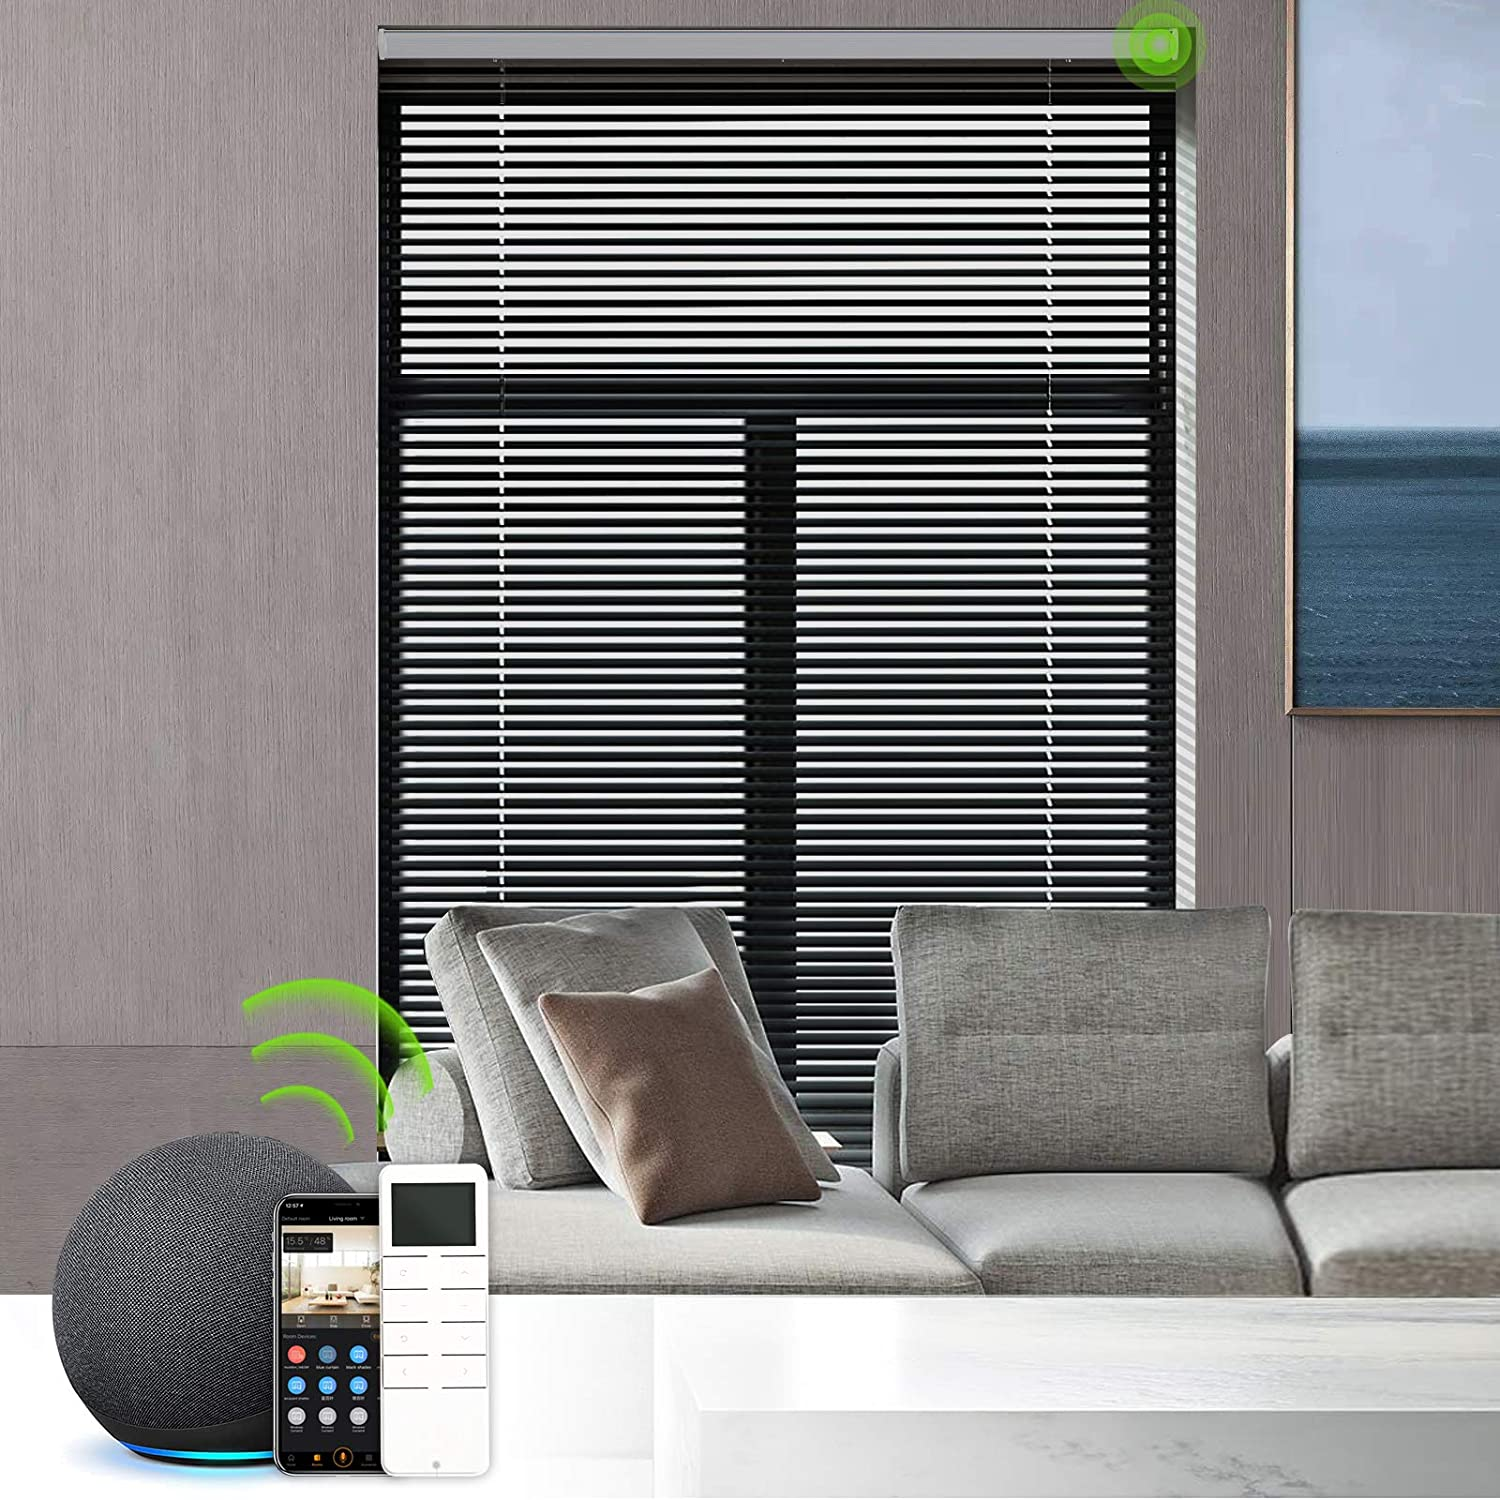 Yoolax Motorized Venetian Blinds Work with Alexa, Light Filtering Sheer Automated Horizontal Blinds Customized Size, Blackout Aluminum Smart Window Shades with Remote Control for Home Office (Black)